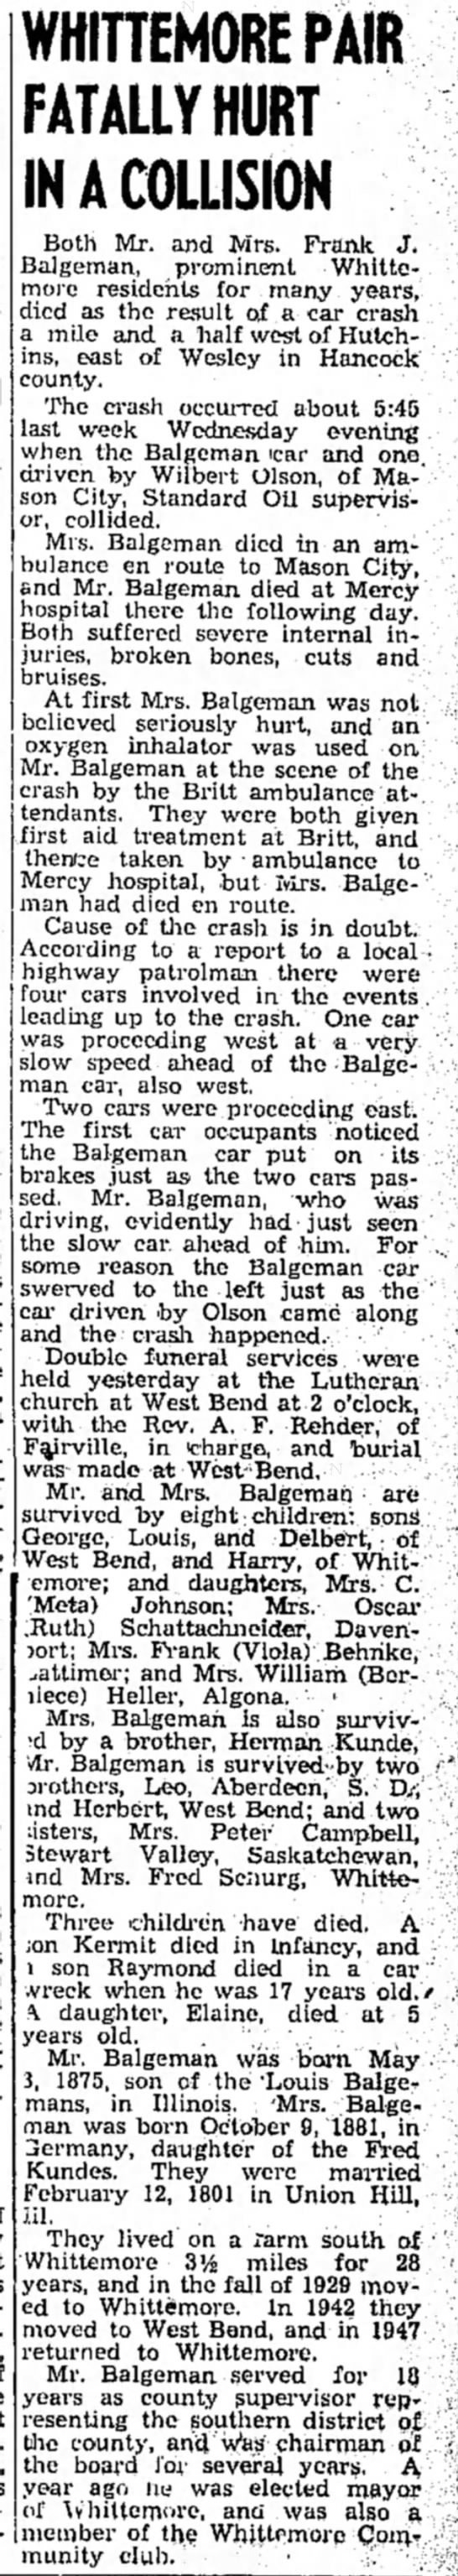 Mrs FJ Balgeman car accident